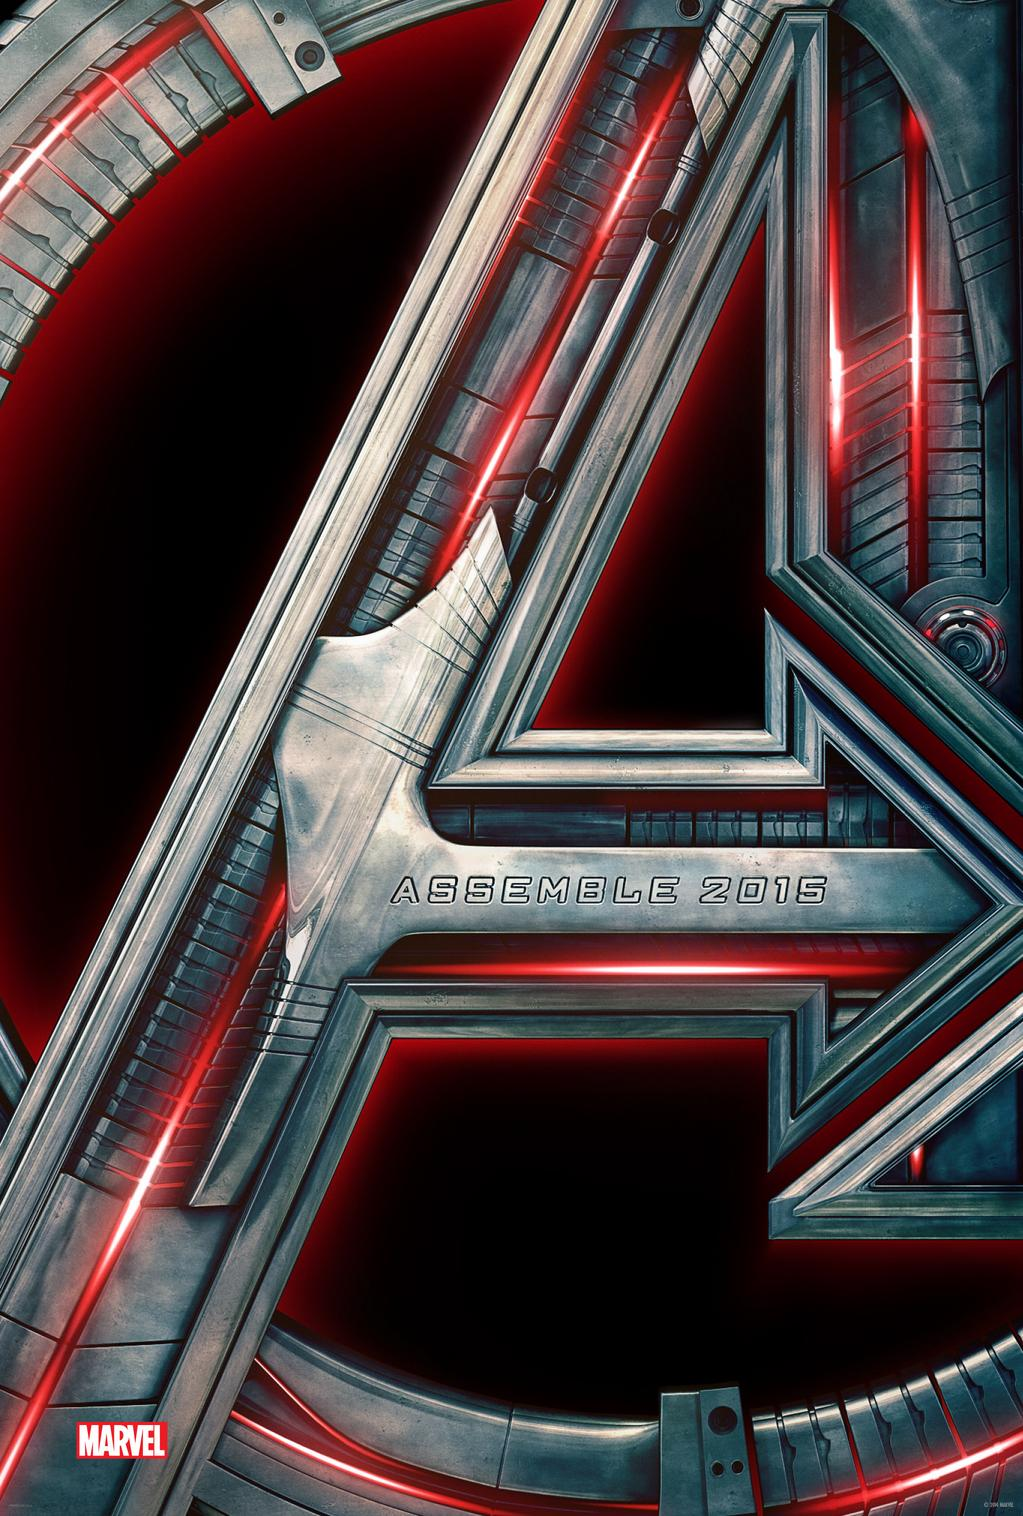 The Official Avengers: Age of Ultron poster.